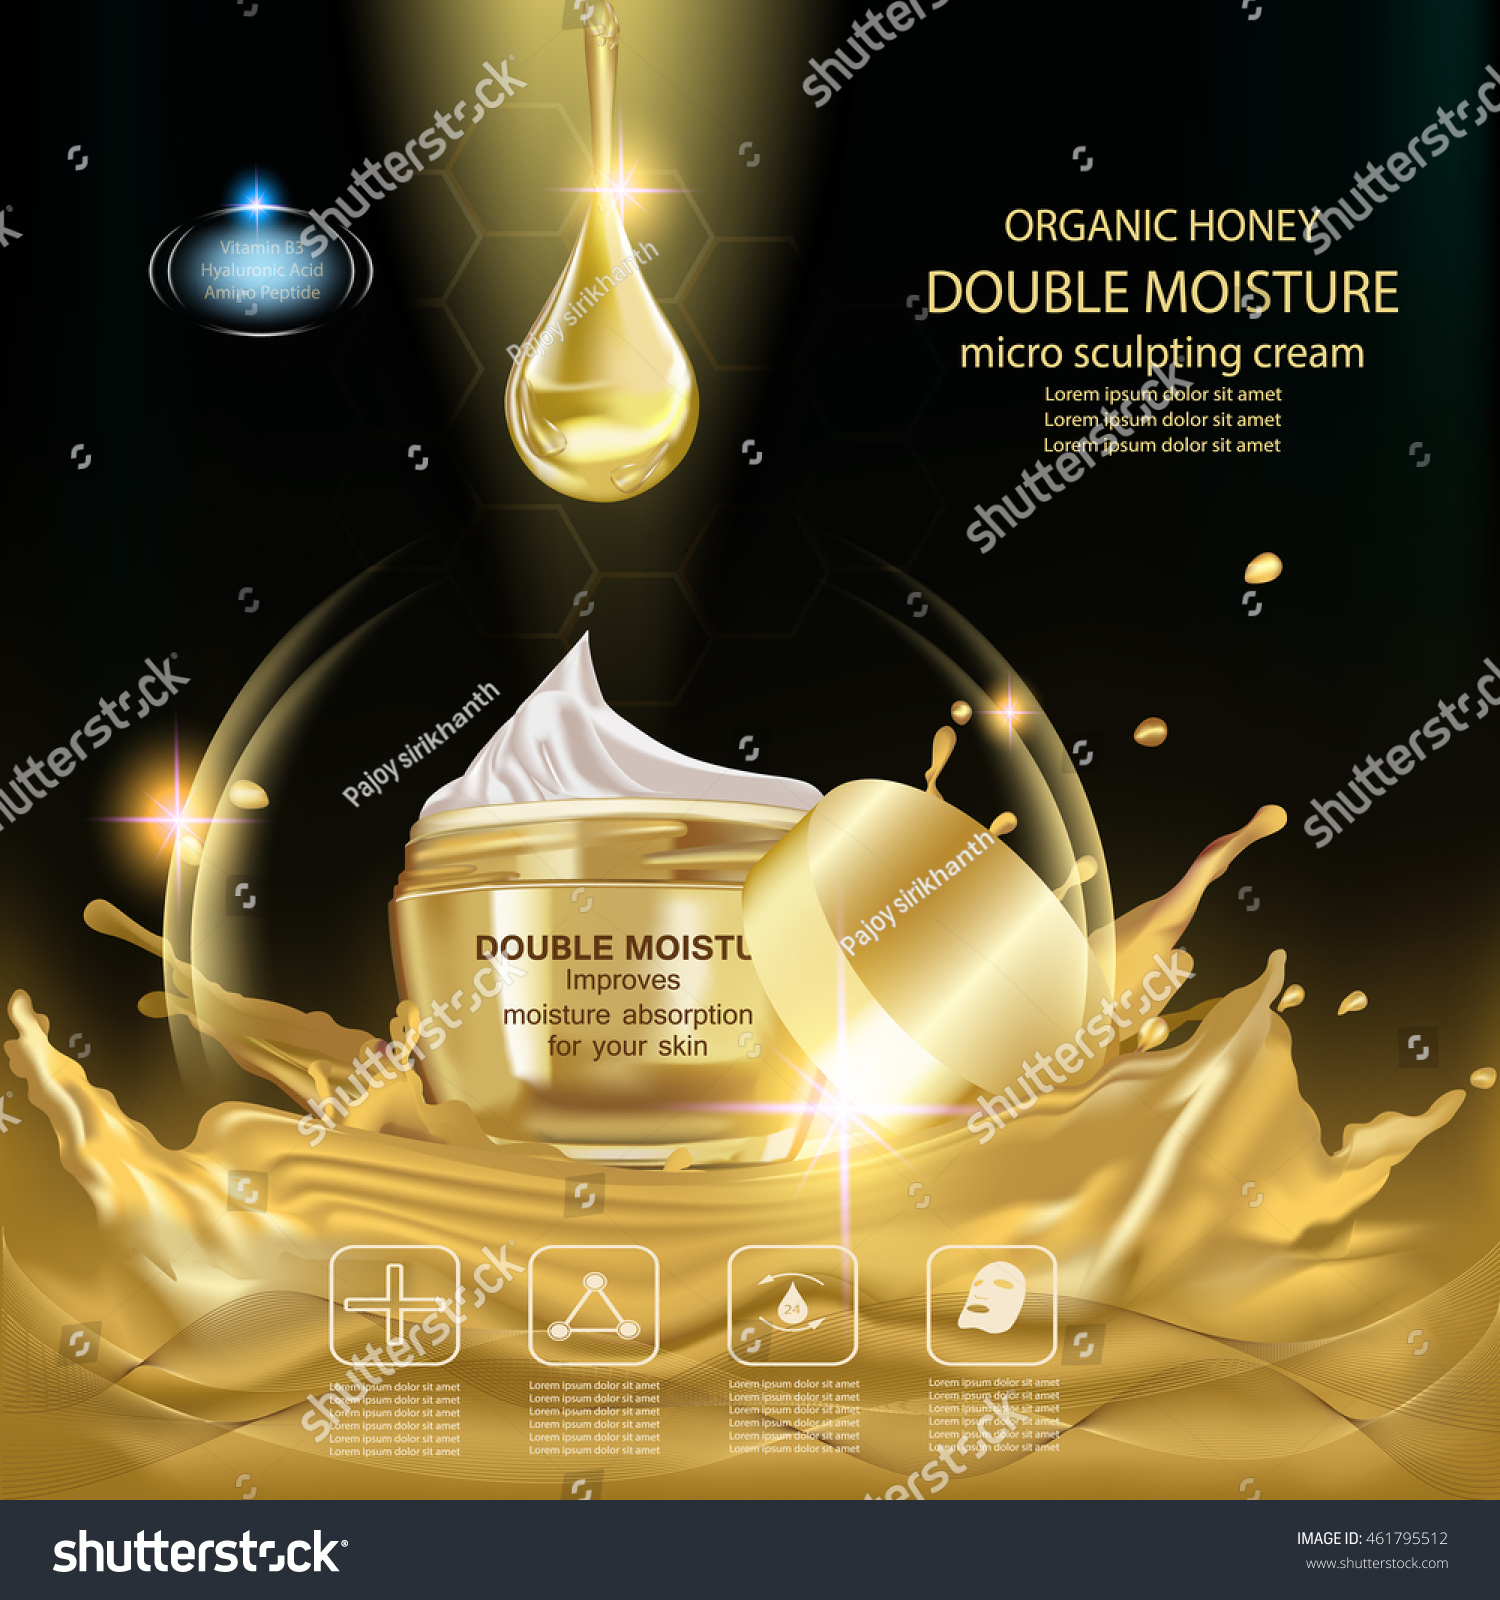 Double moisture cream Improves moisture absorption for skin in the gold jar above gold splash water